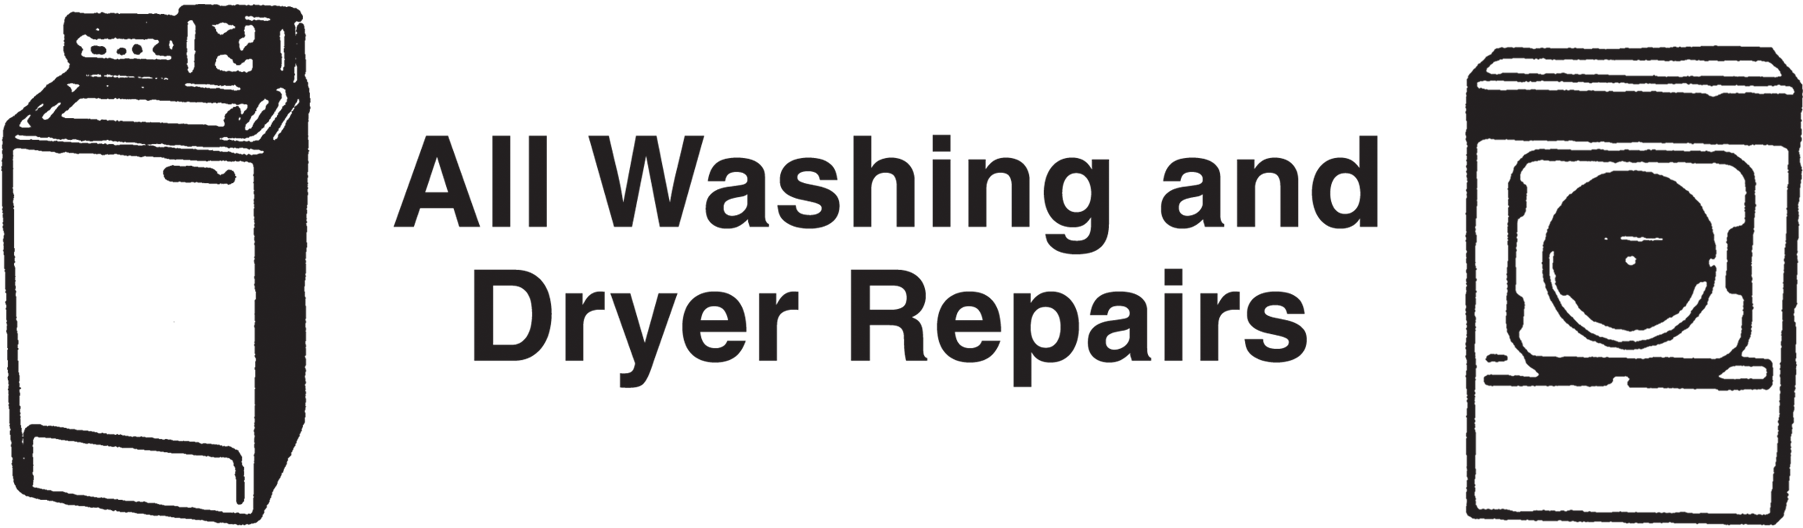 All Washing And Dryer Repairs